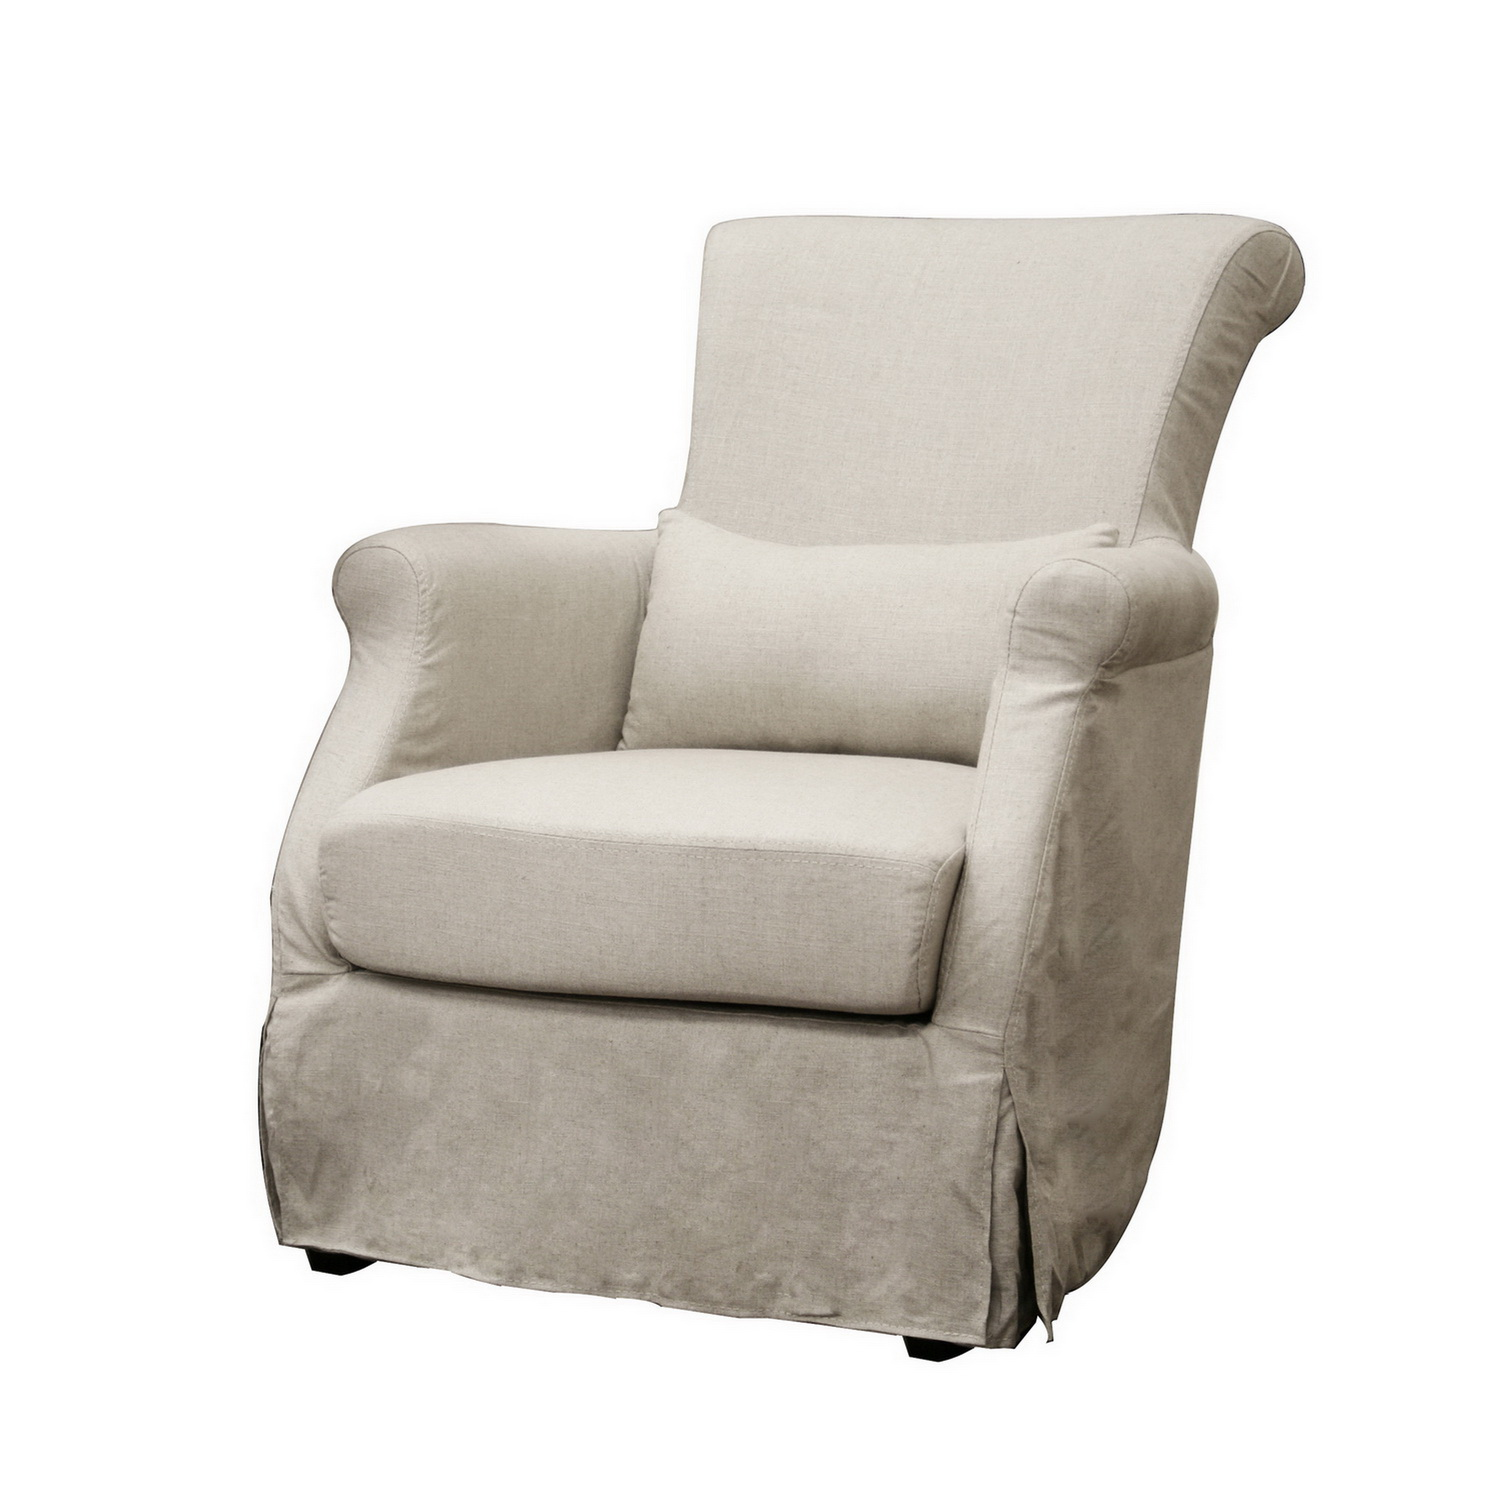 furniture living room furniture accent chair